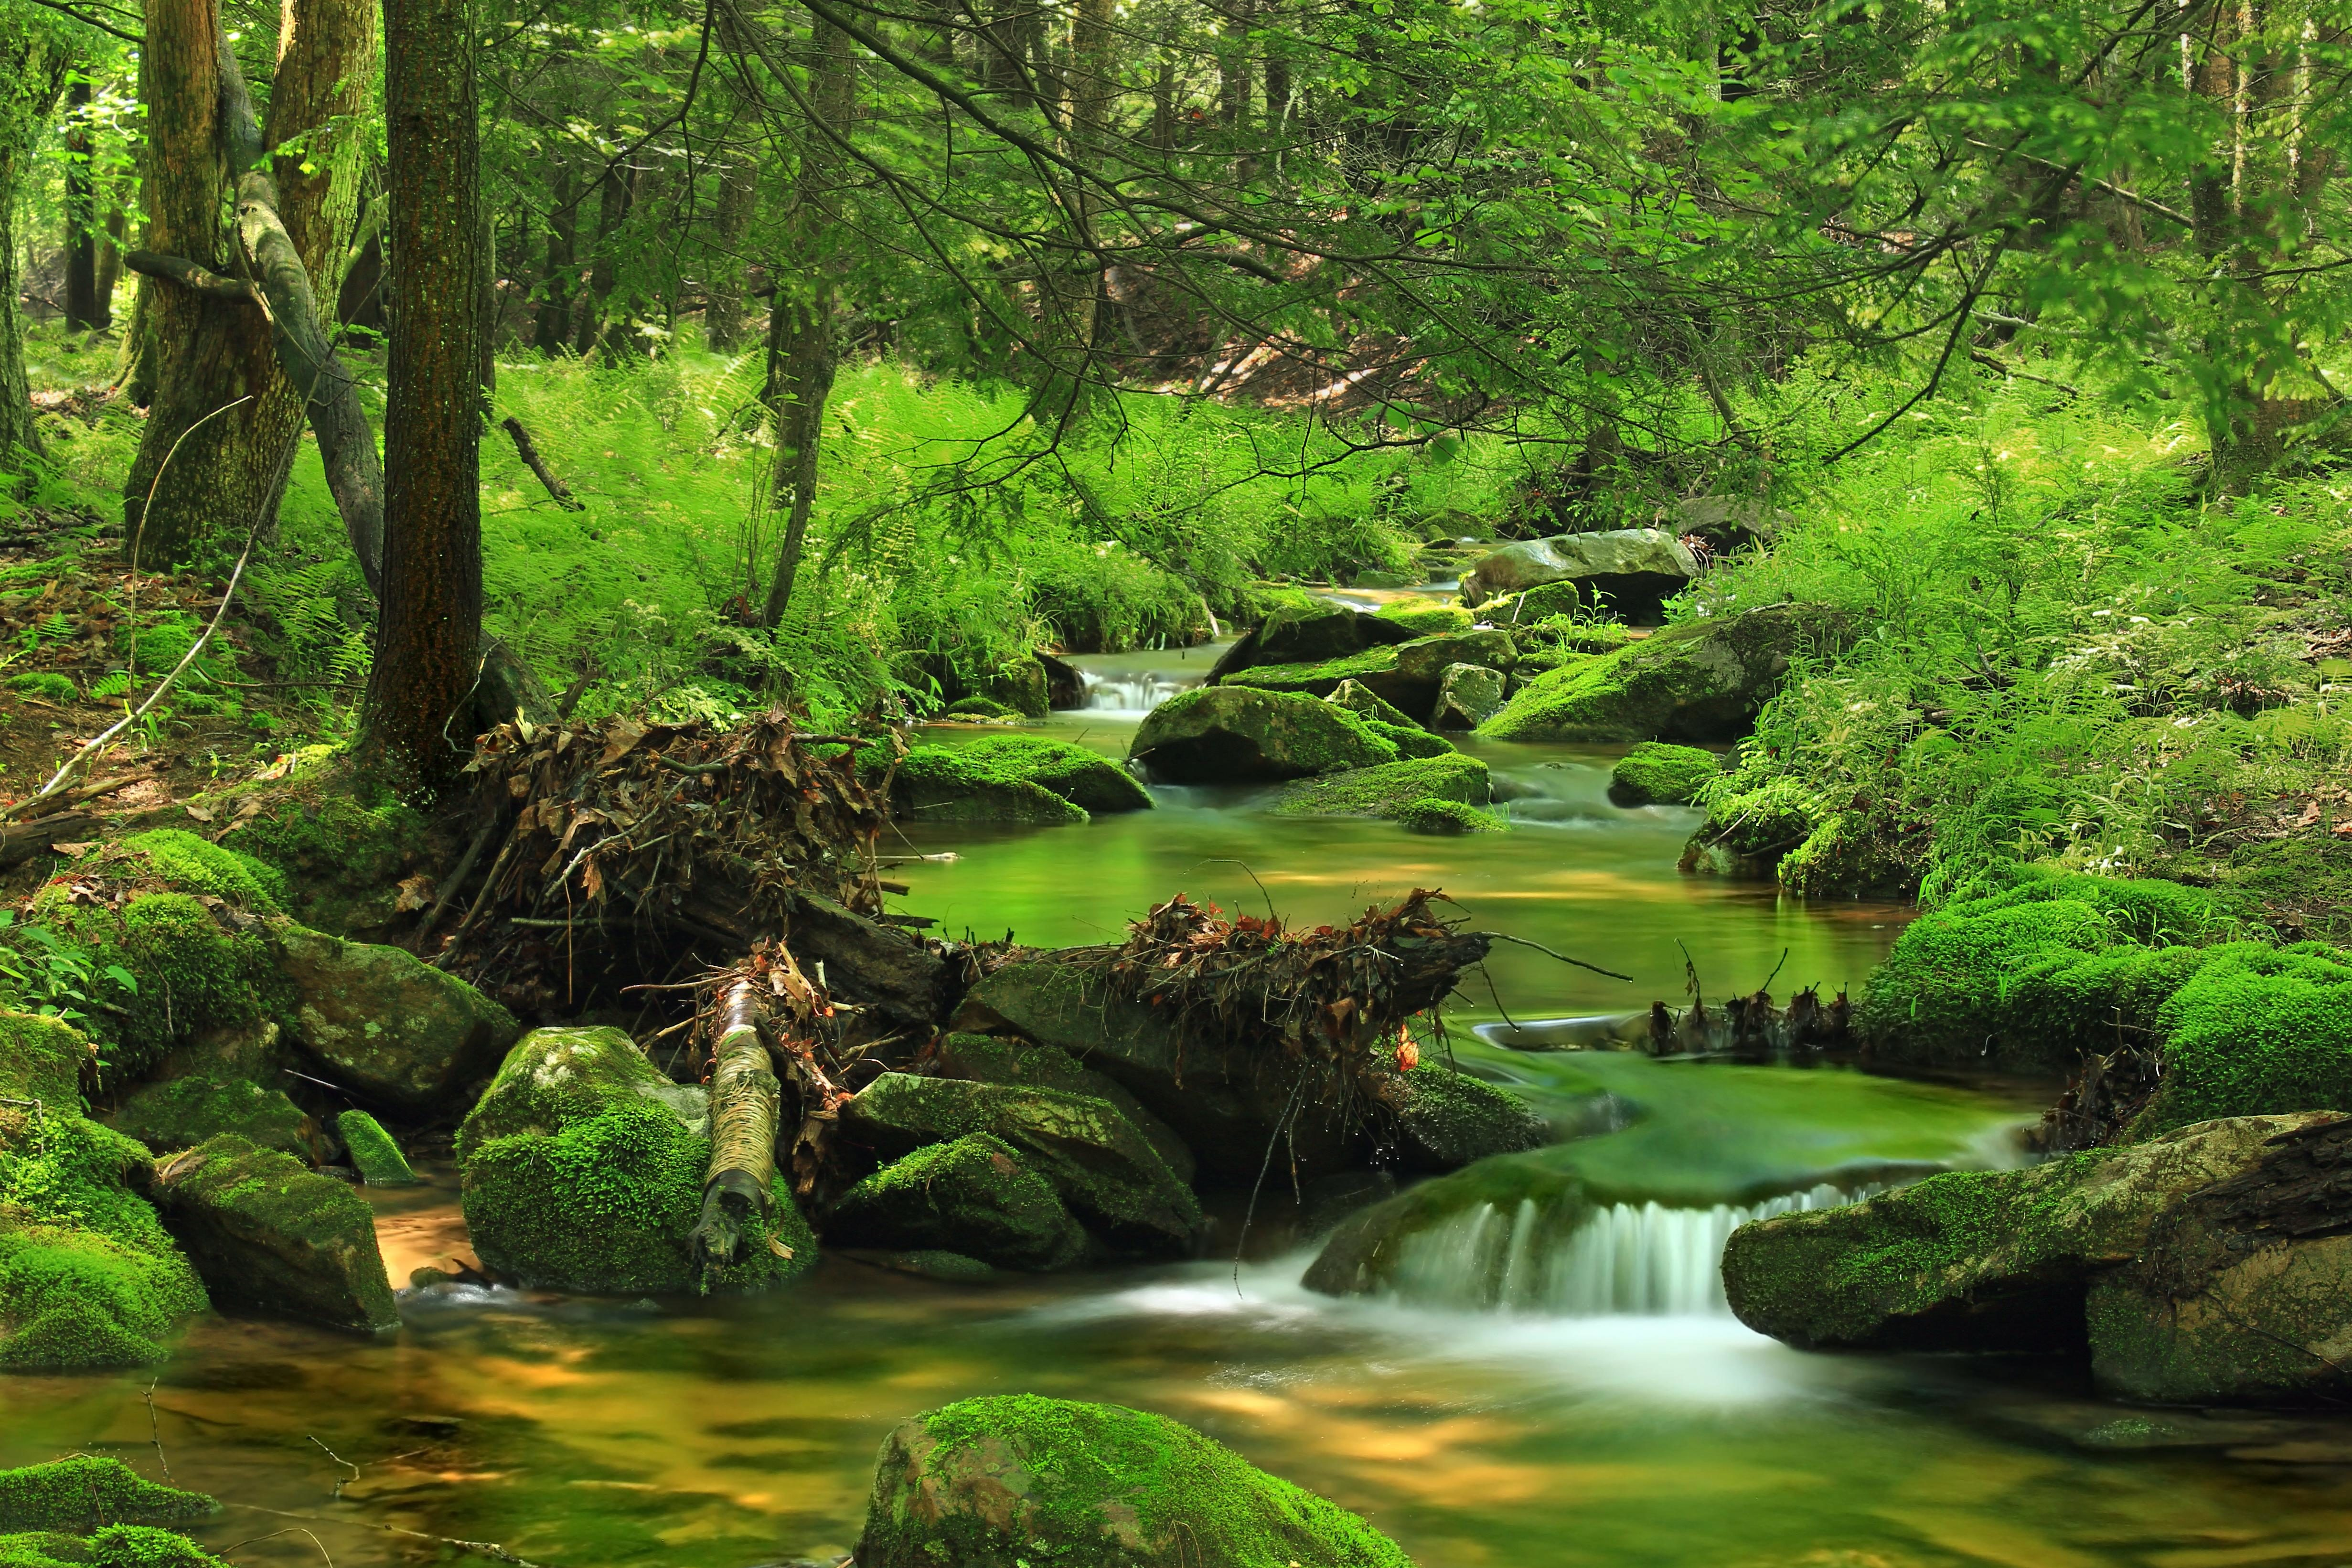 Free picture wood nature water landscape leaf tree moss waterfall forest